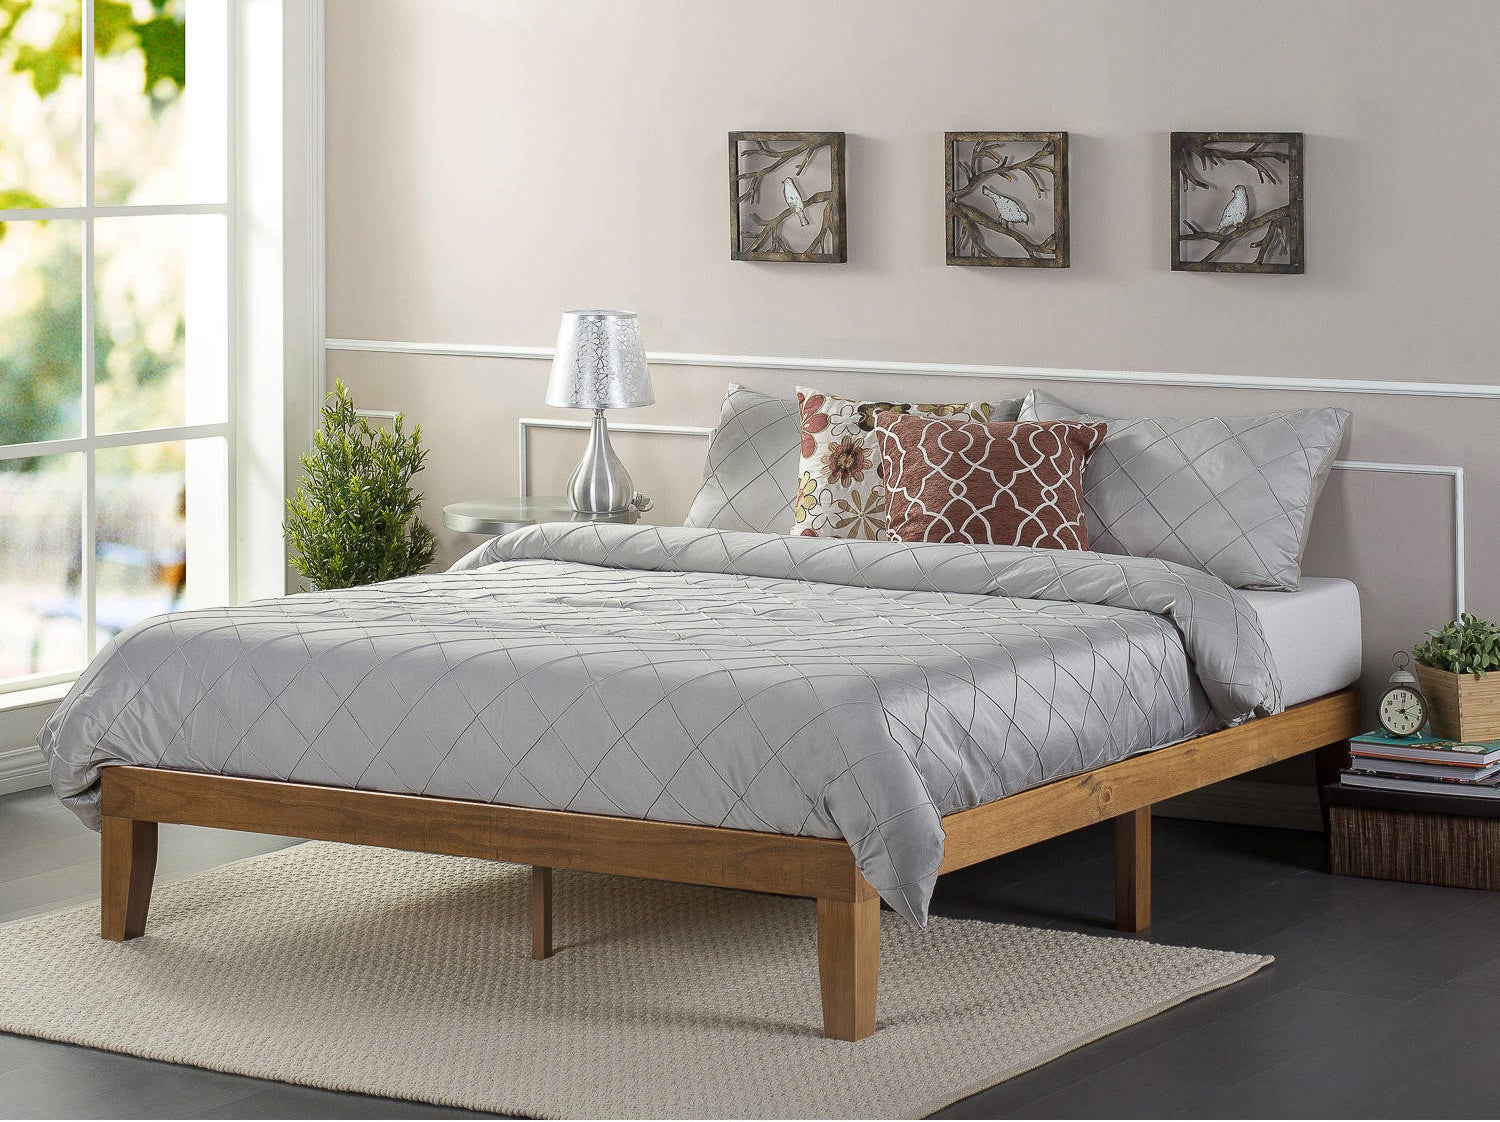 """Promising review: """"Great simple design and a breeze to put together. Sturdier than I thought it would be. Fits in nicely with my decor. Needed something without a head board but still beautiful all the way around. I like it so far and would recommend for small spaces."""" —cinnamongirlPrice: $119+ (available in sizes twin-king and three finishes)"""